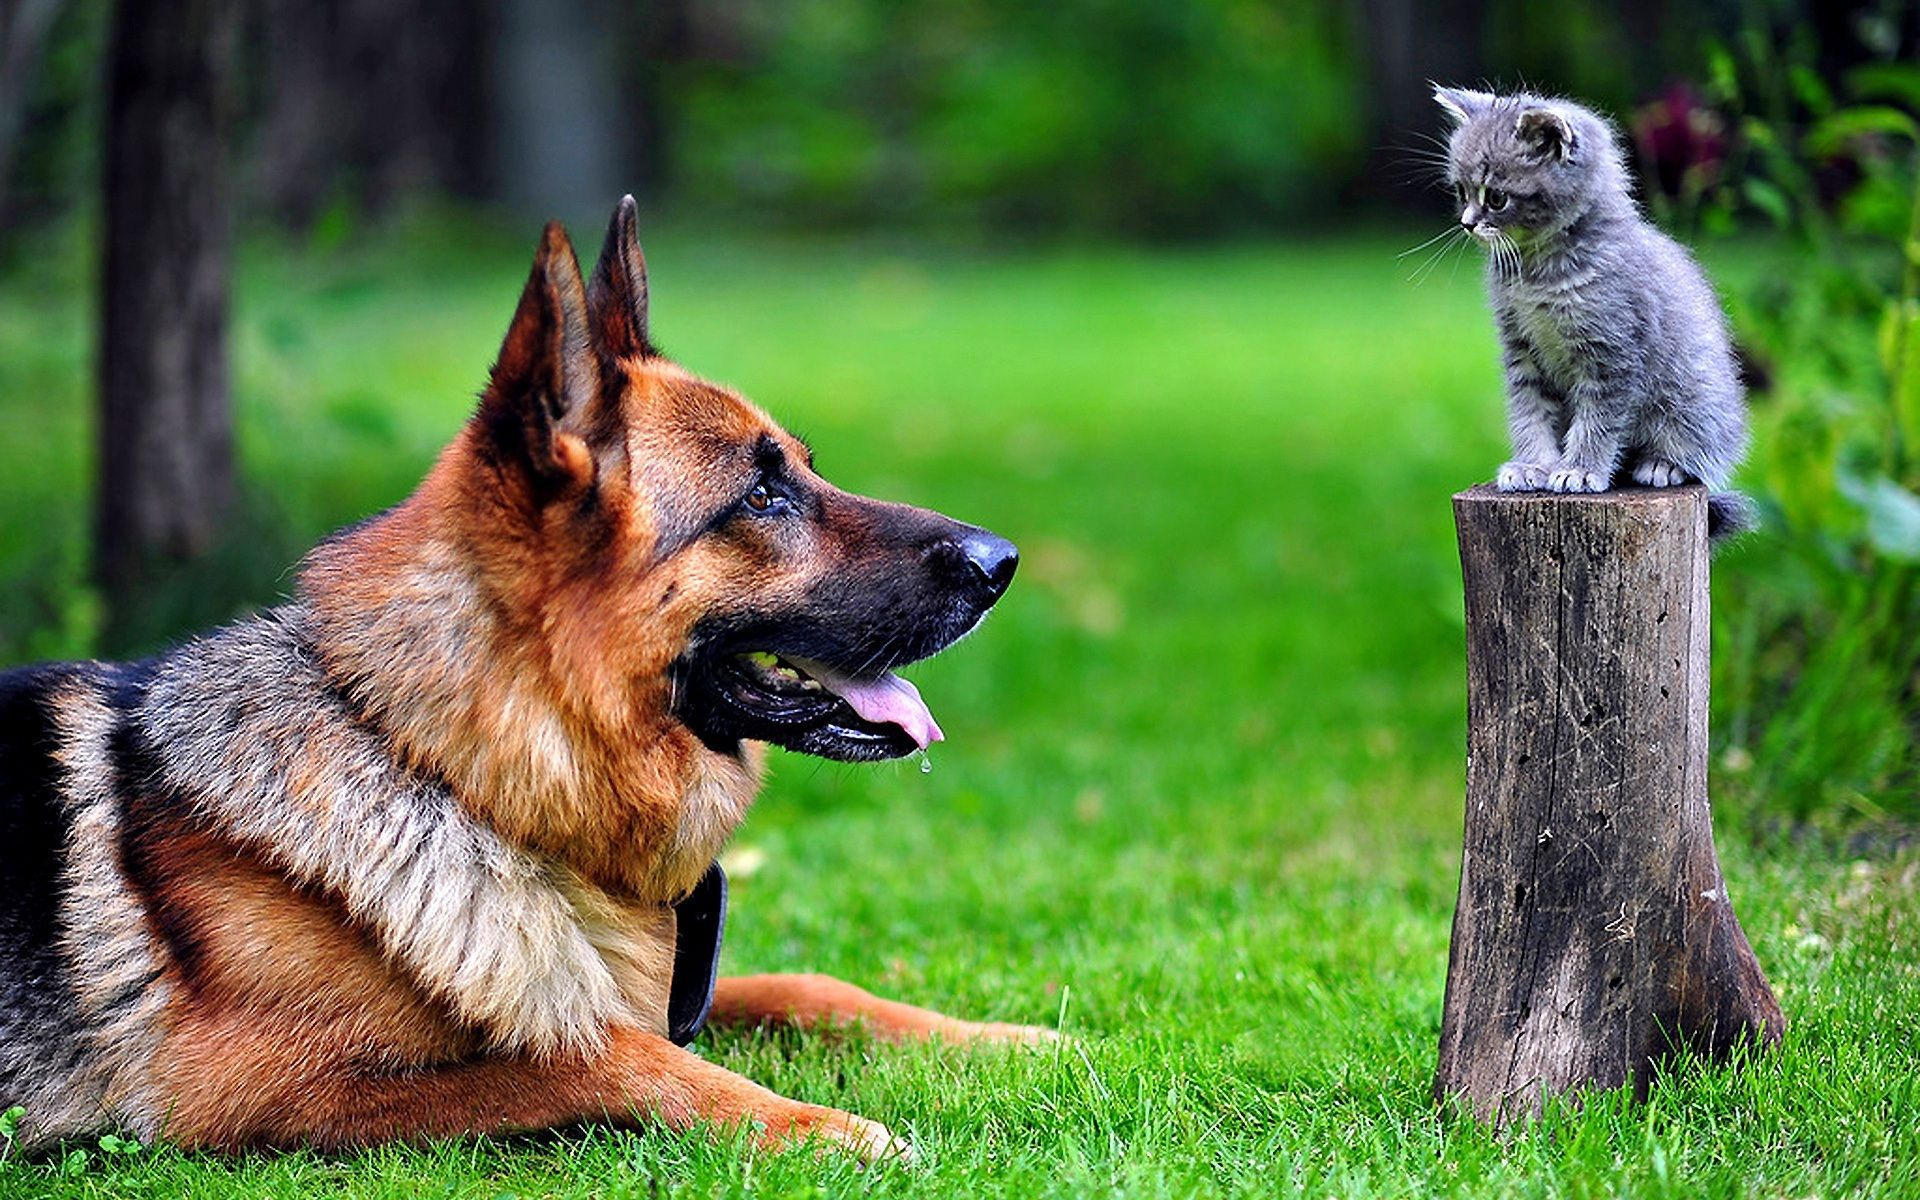 How do you get your GSD not to eat the cat? Any tips?